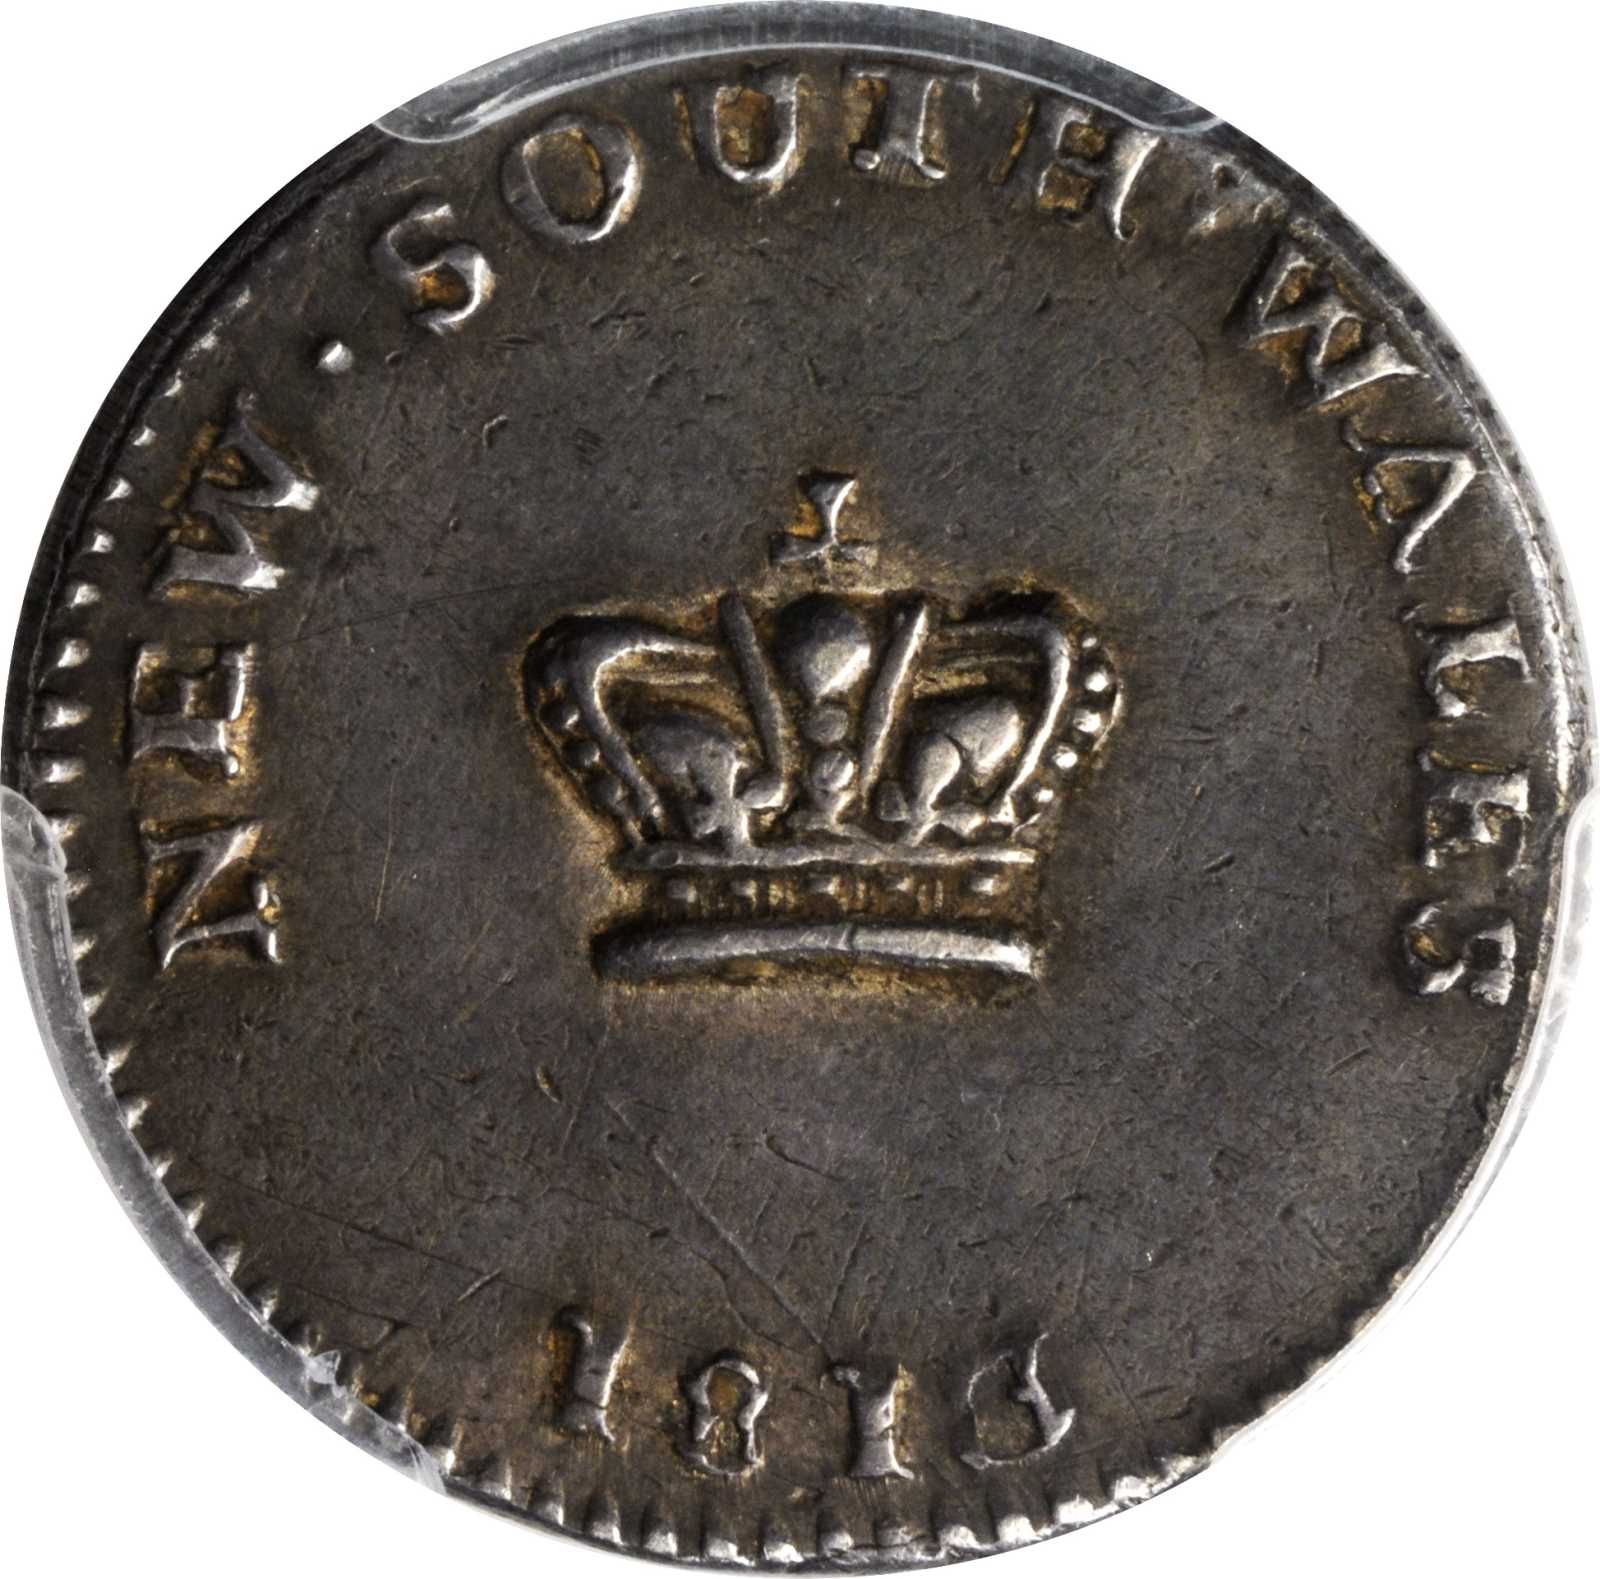 Fifteen Pence (Dump): Photo New South Wales 1813 15 pence